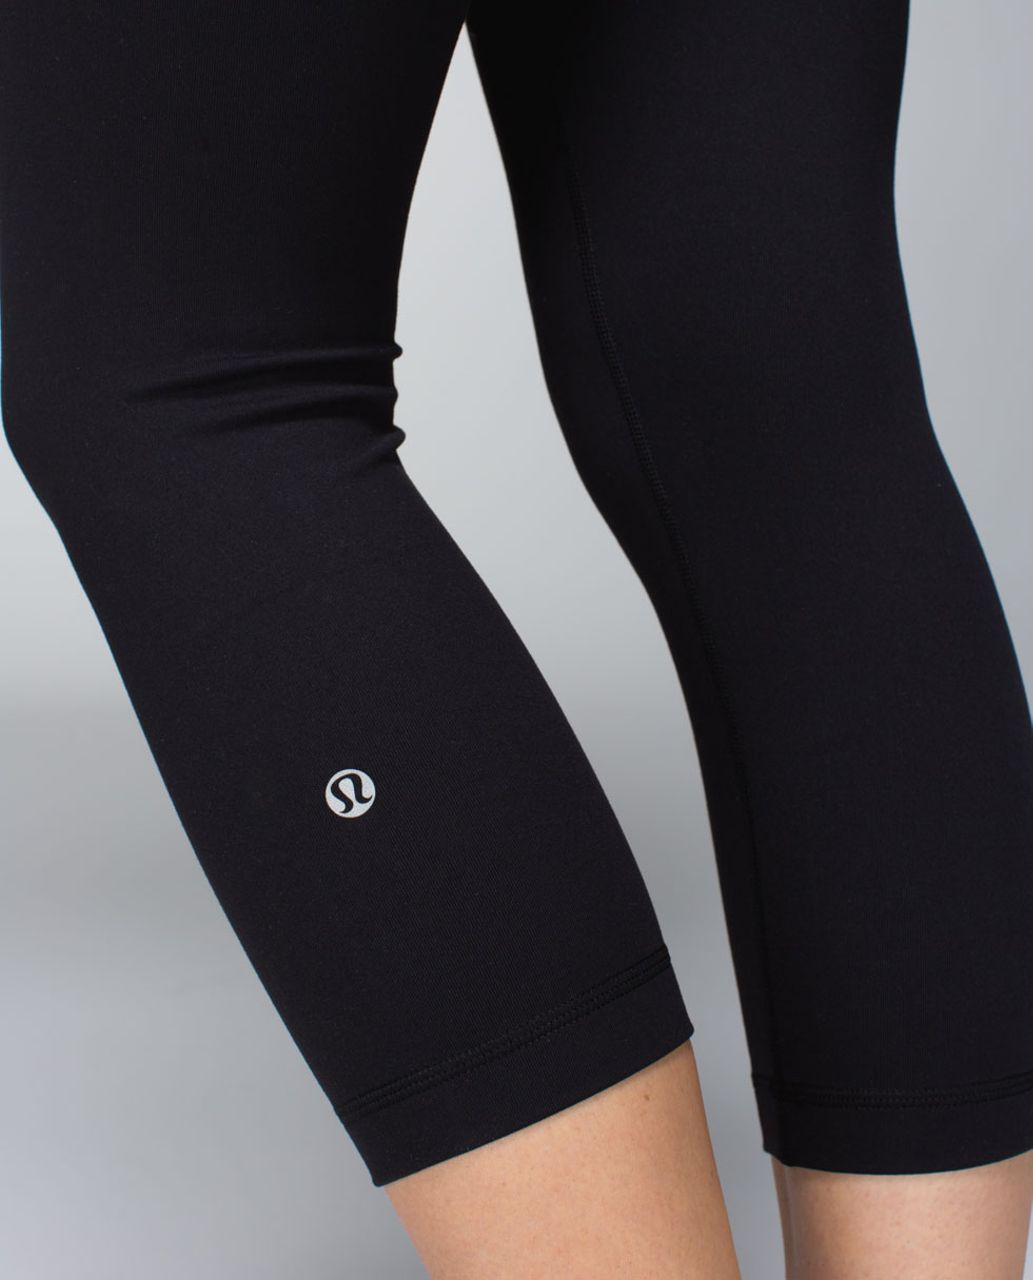 Lululemon Wunder Under Crop *Full-On Luon - Black / Quilt Spring 14-12